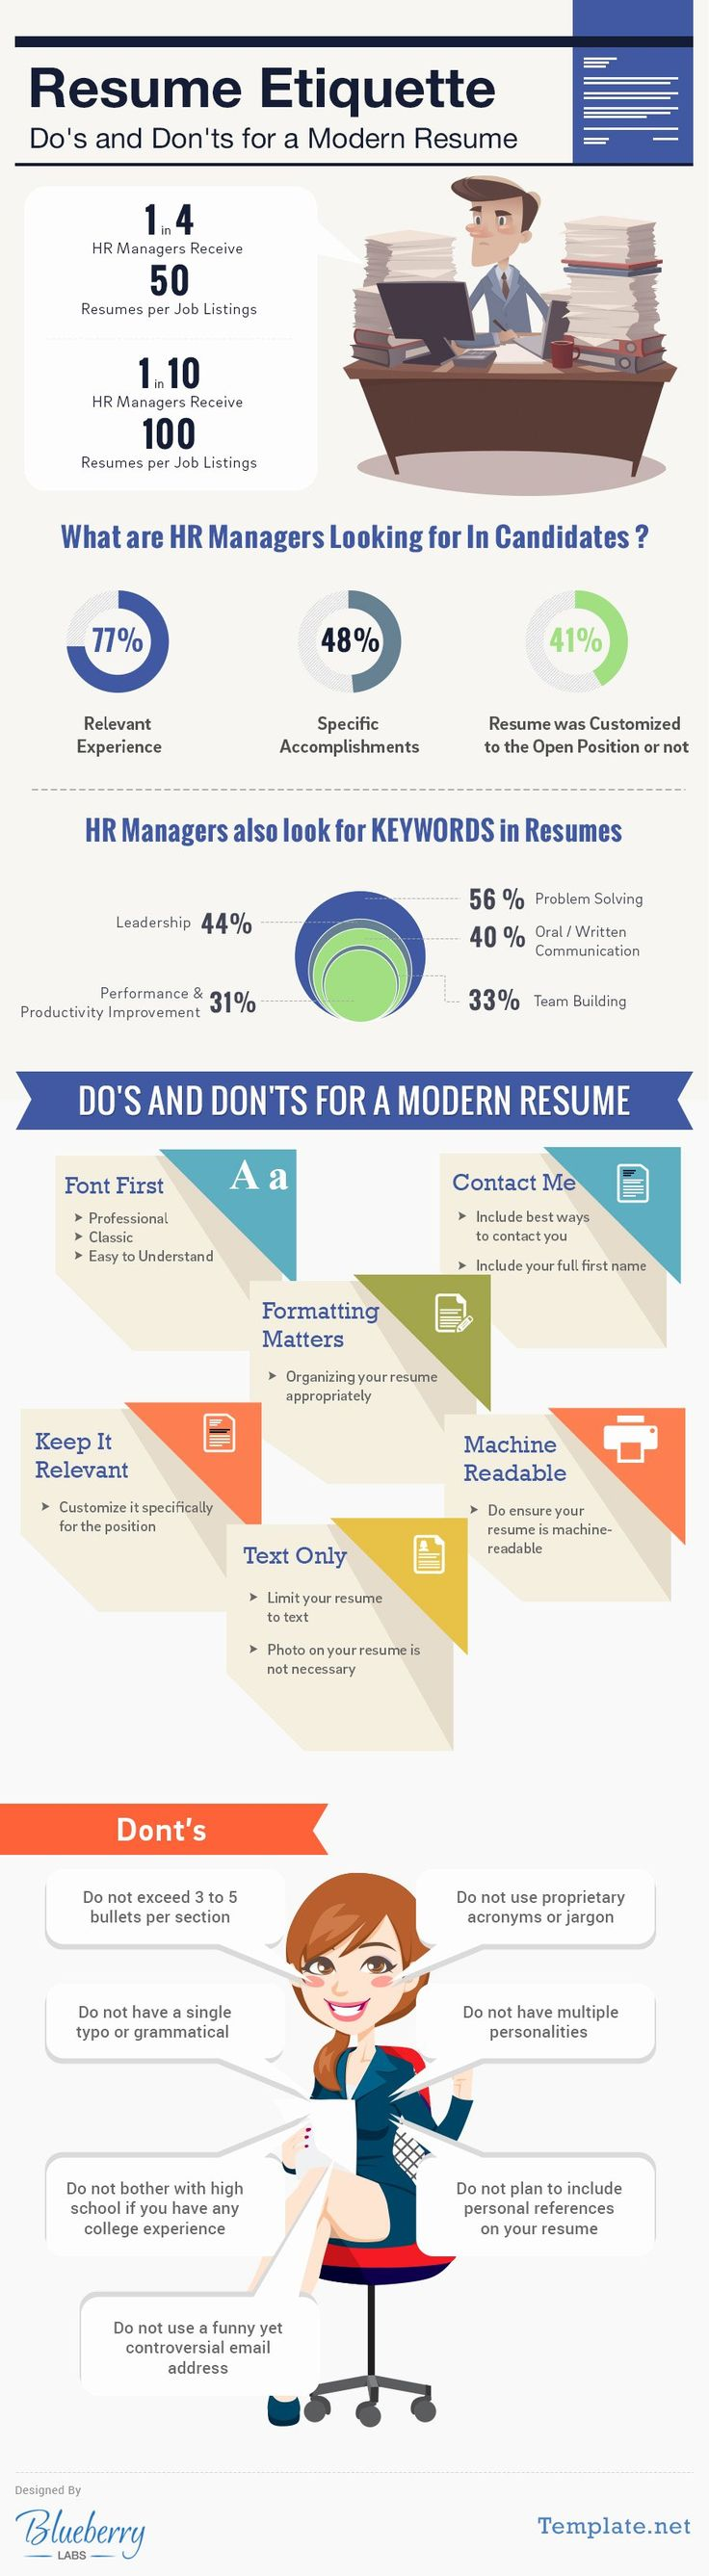 Dos and donts resume elegant resume etiquitte dos and don